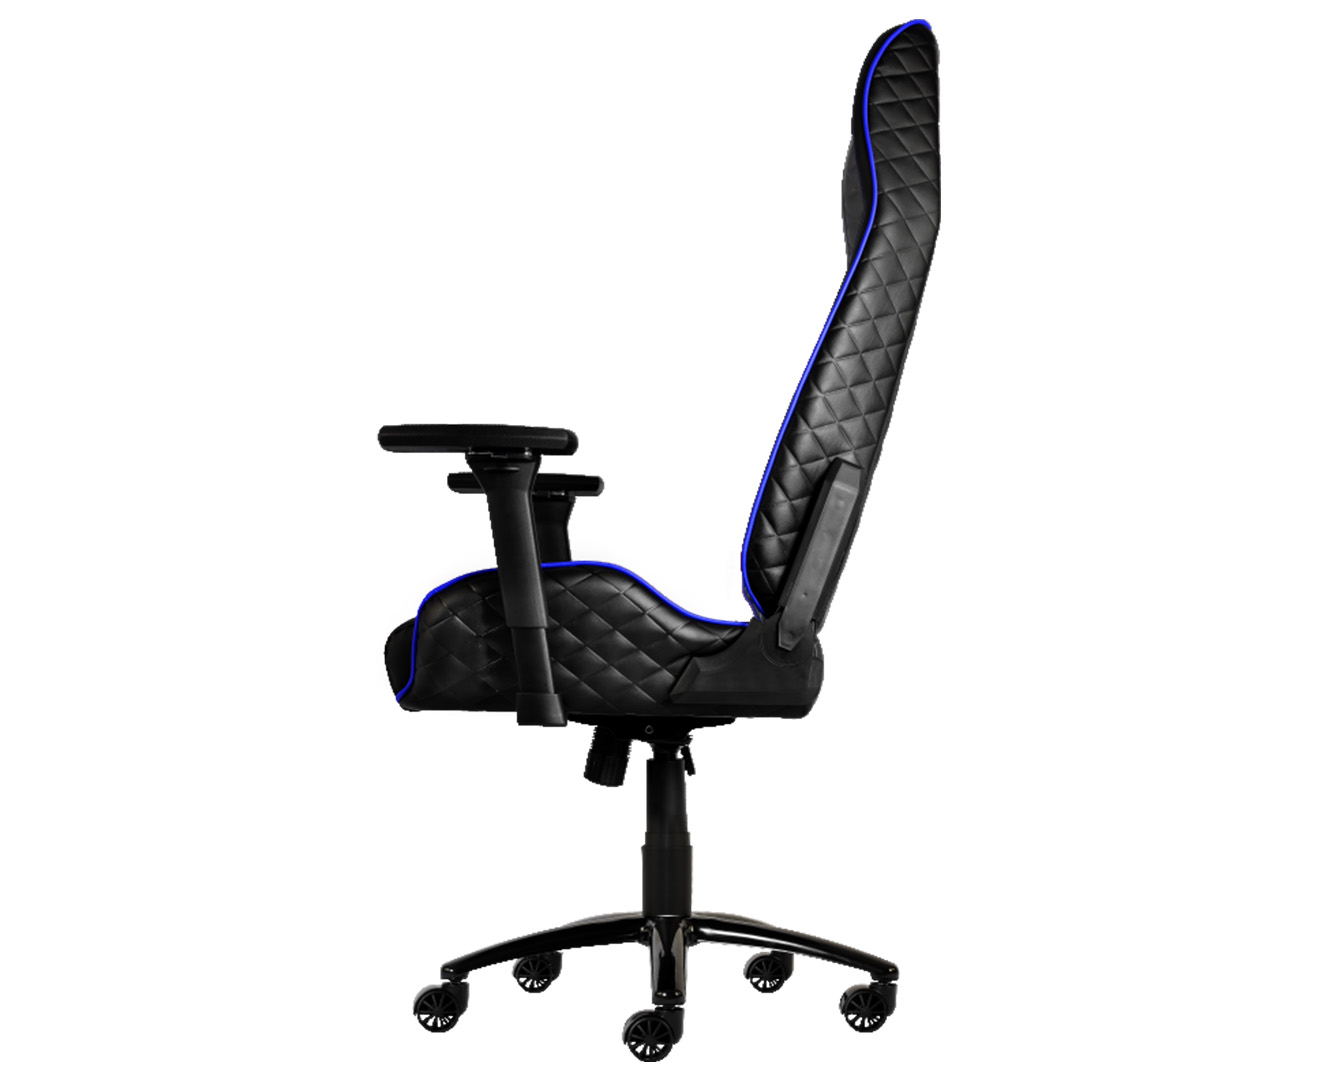 Tgc40 Blackblueau Gaming Blackblueau Chair Gaming Tgc40 Thunderx3 Chair Thunderx3 CrexBod